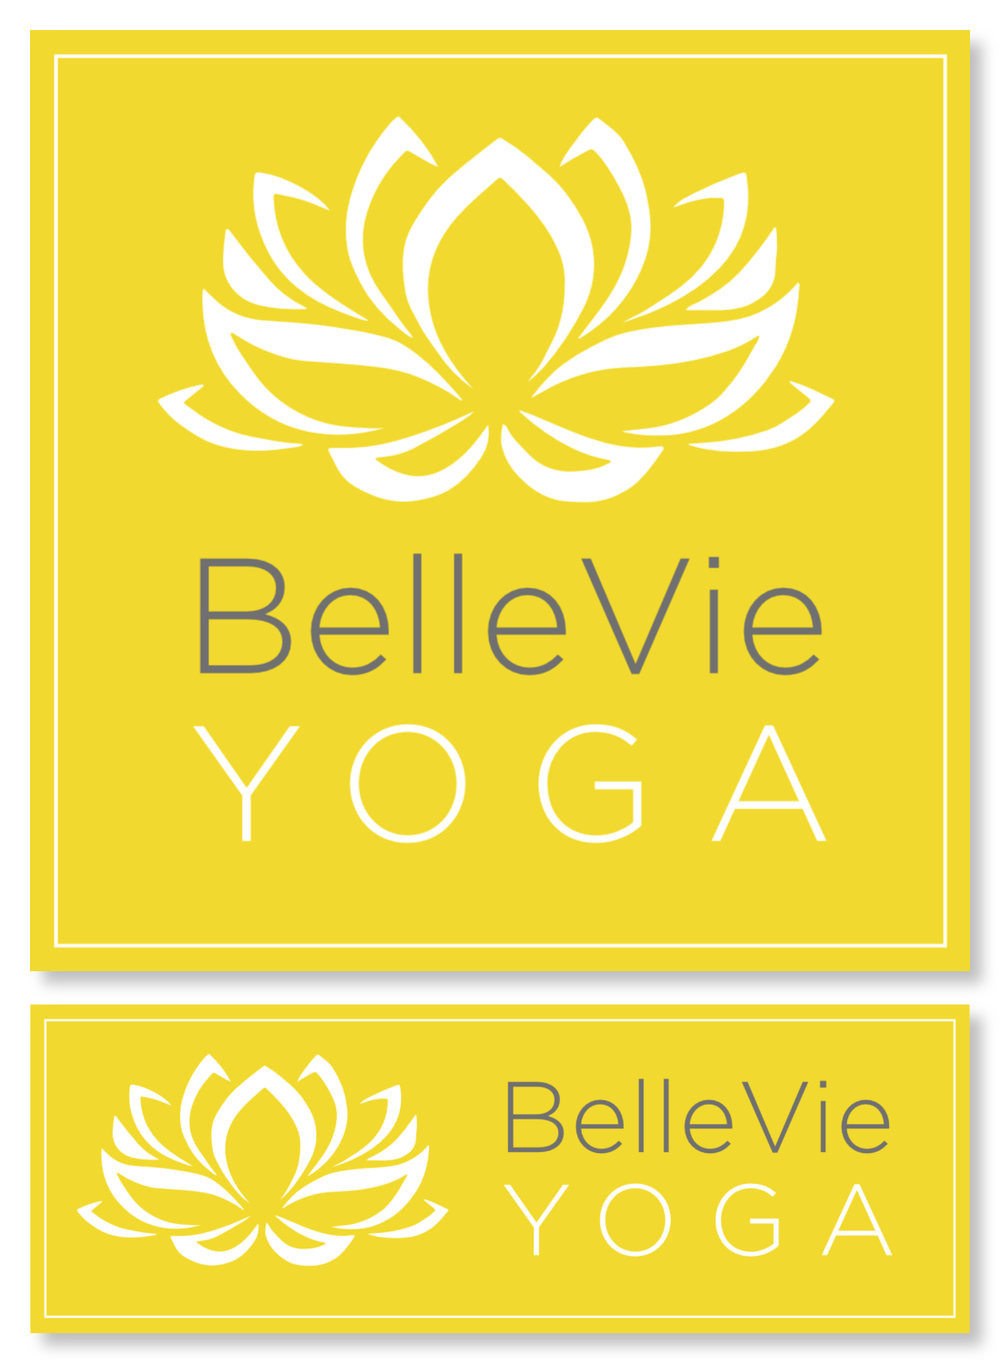 BelleVie Yoga Center_Selects_5 Comp.jpg